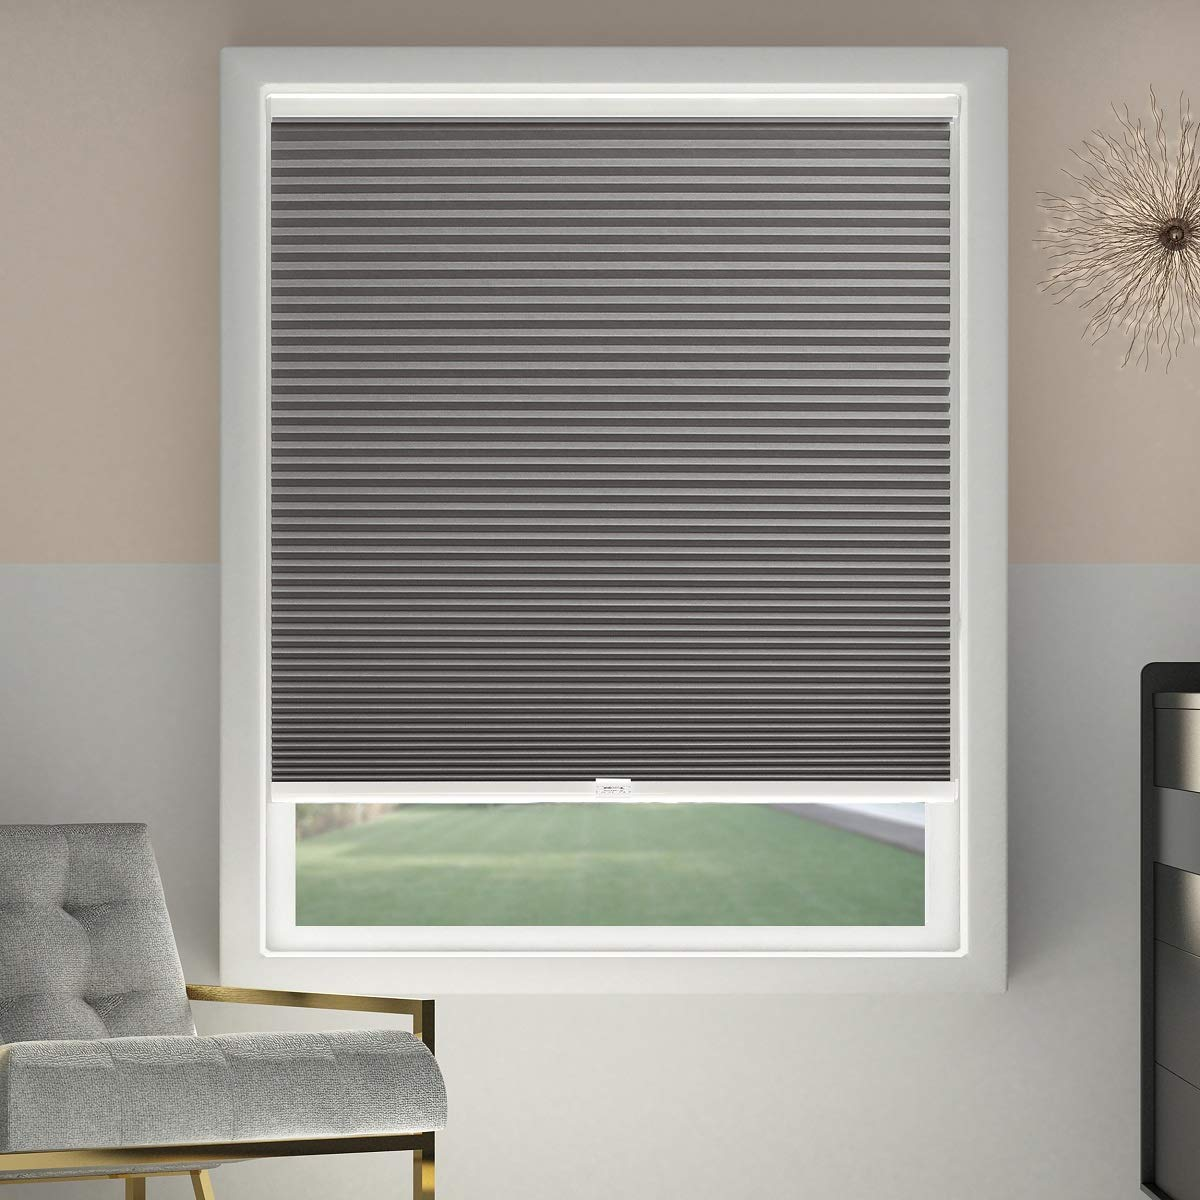 Sbartar Cellular Shades Cordless Blackout Honeycomb Blinds Fabric Window Shades 23x64 Inch Cool Silverblackout